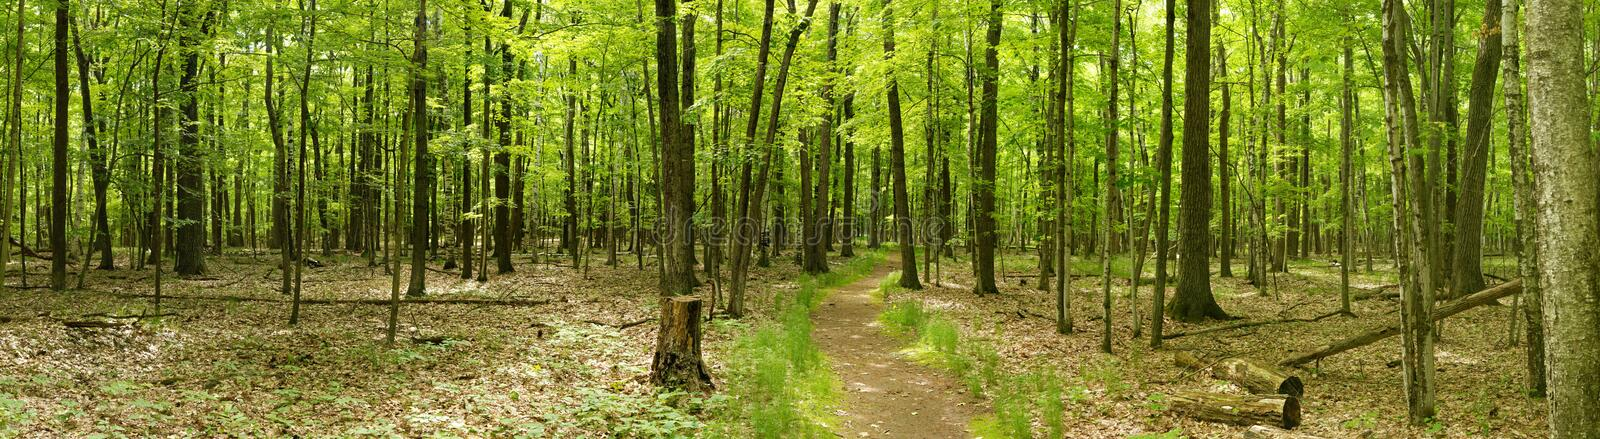 Panorama - Ice Age Trail - deep woods portion late spring sunny day royalty free stock image